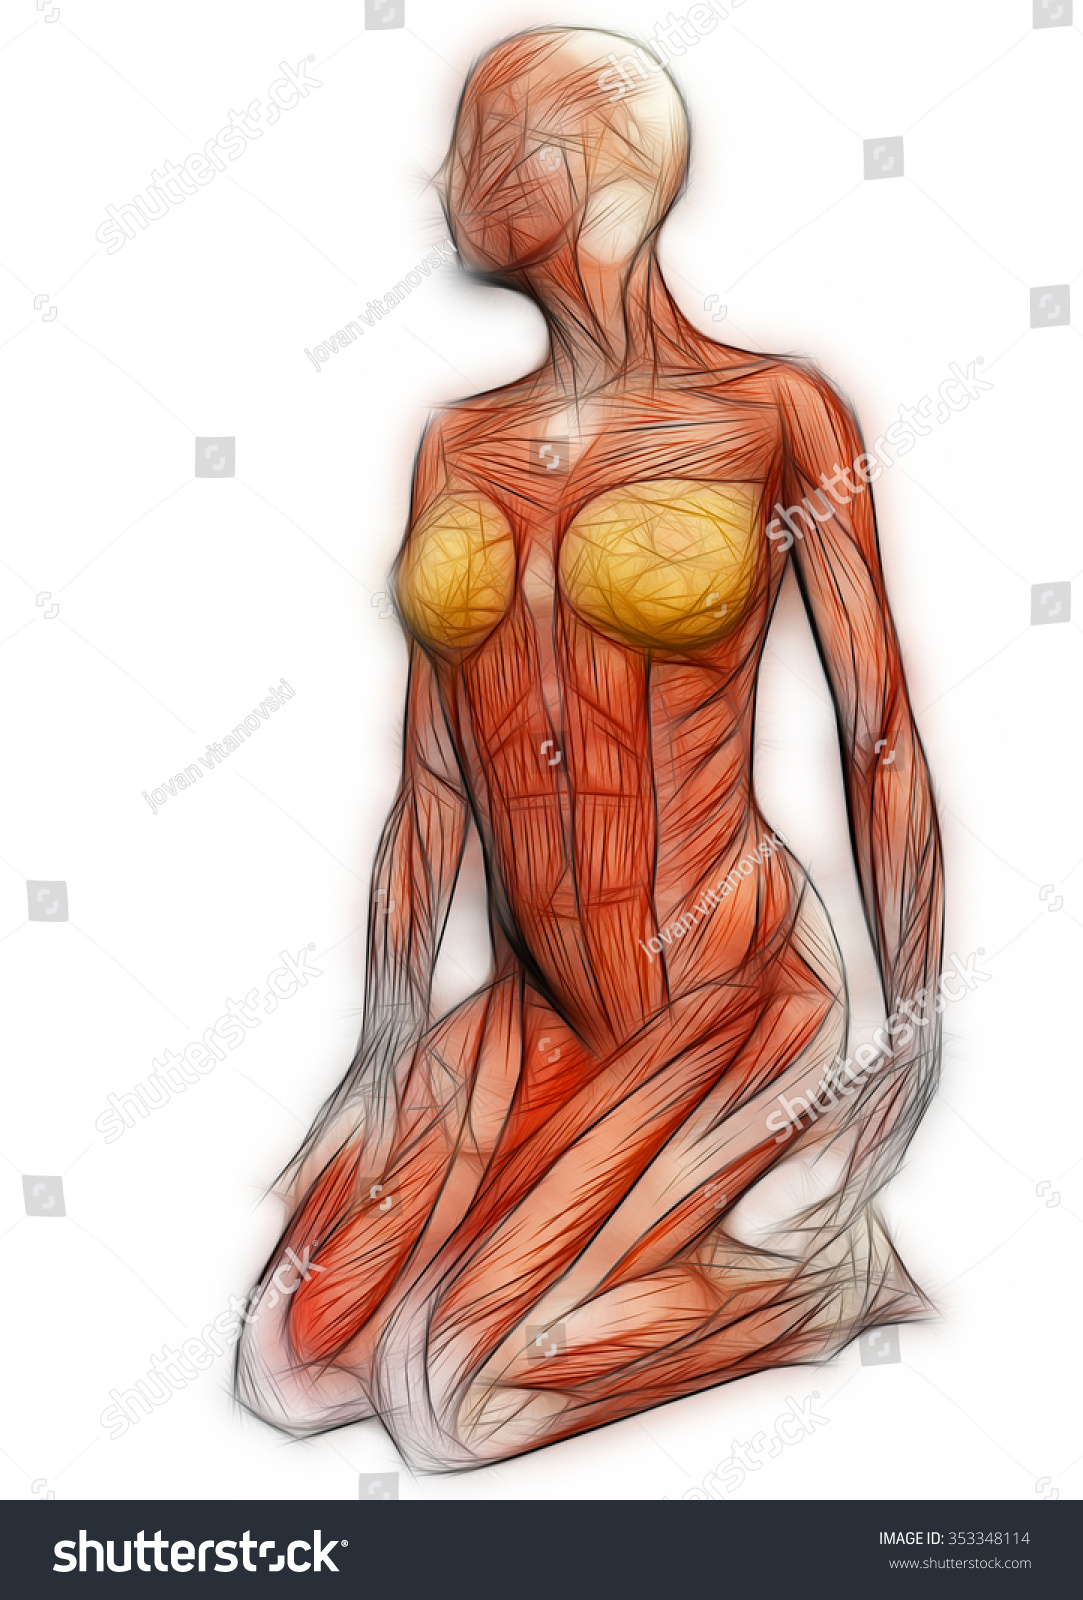 Human Anatomy Female Muscles Made 3 D Stock Illustration 353348114